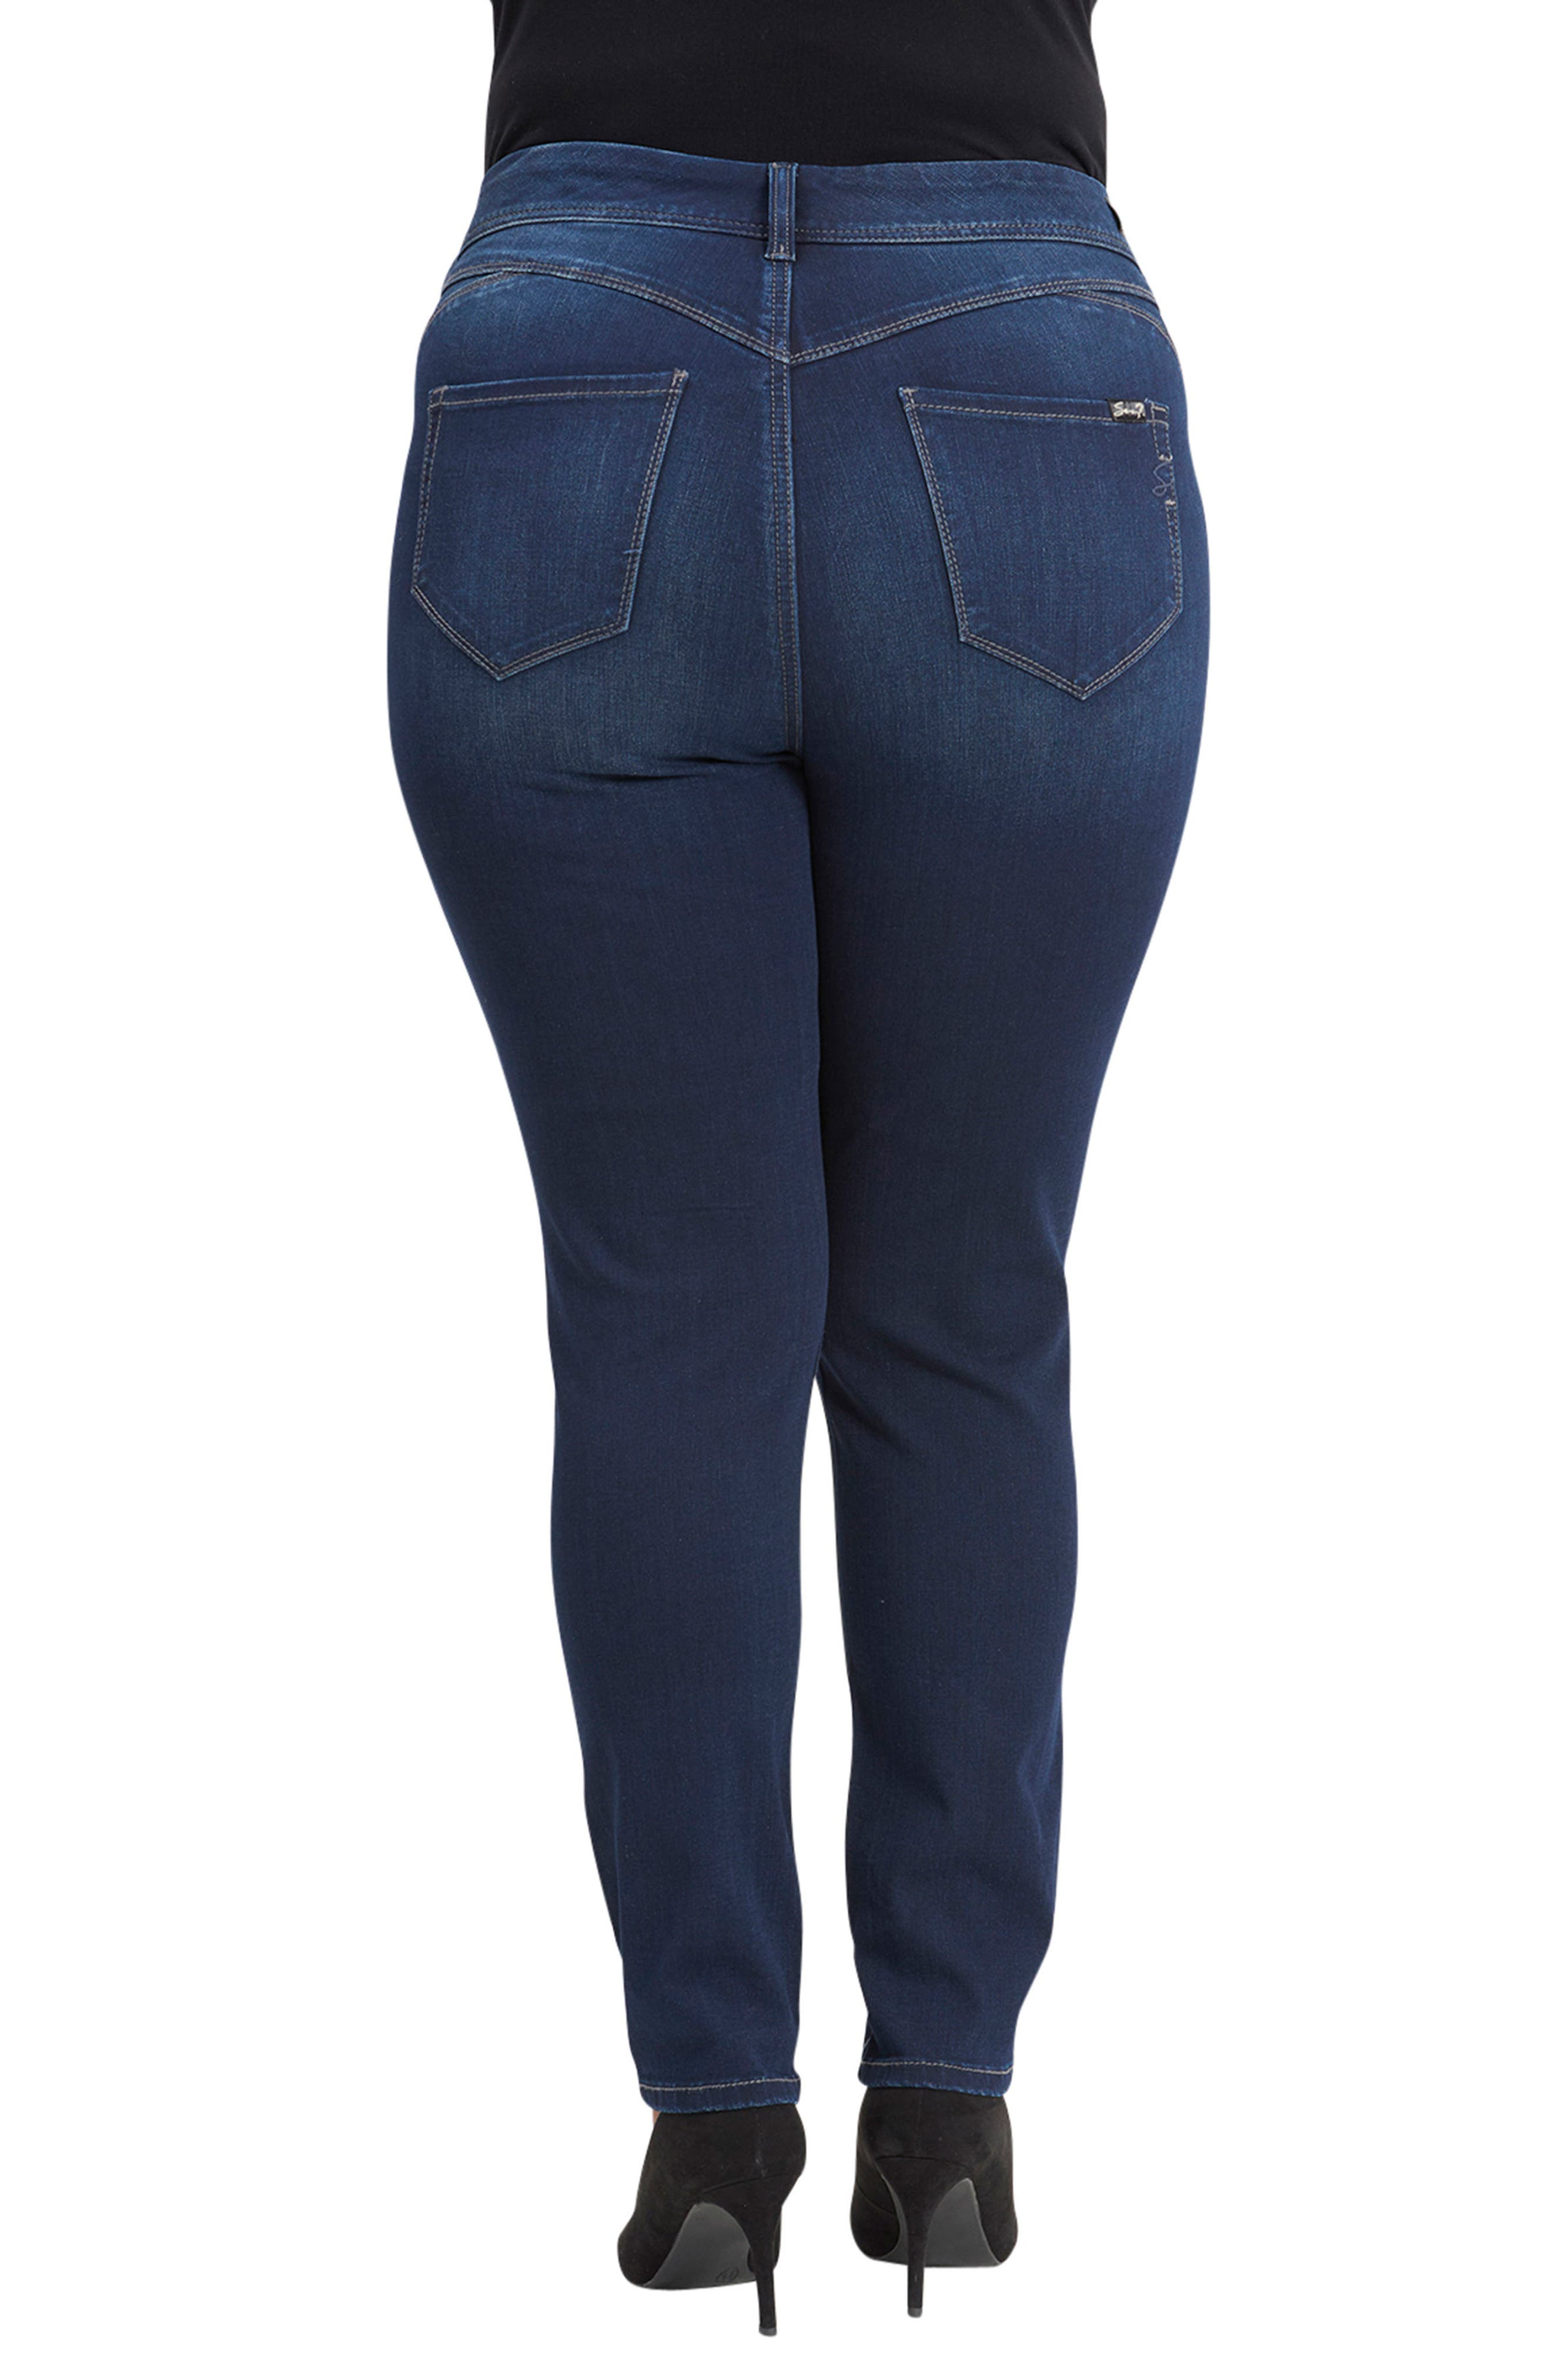 Bootyshaper Skinny Jeans,                             Alternate thumbnail 2, color,                             BLUE